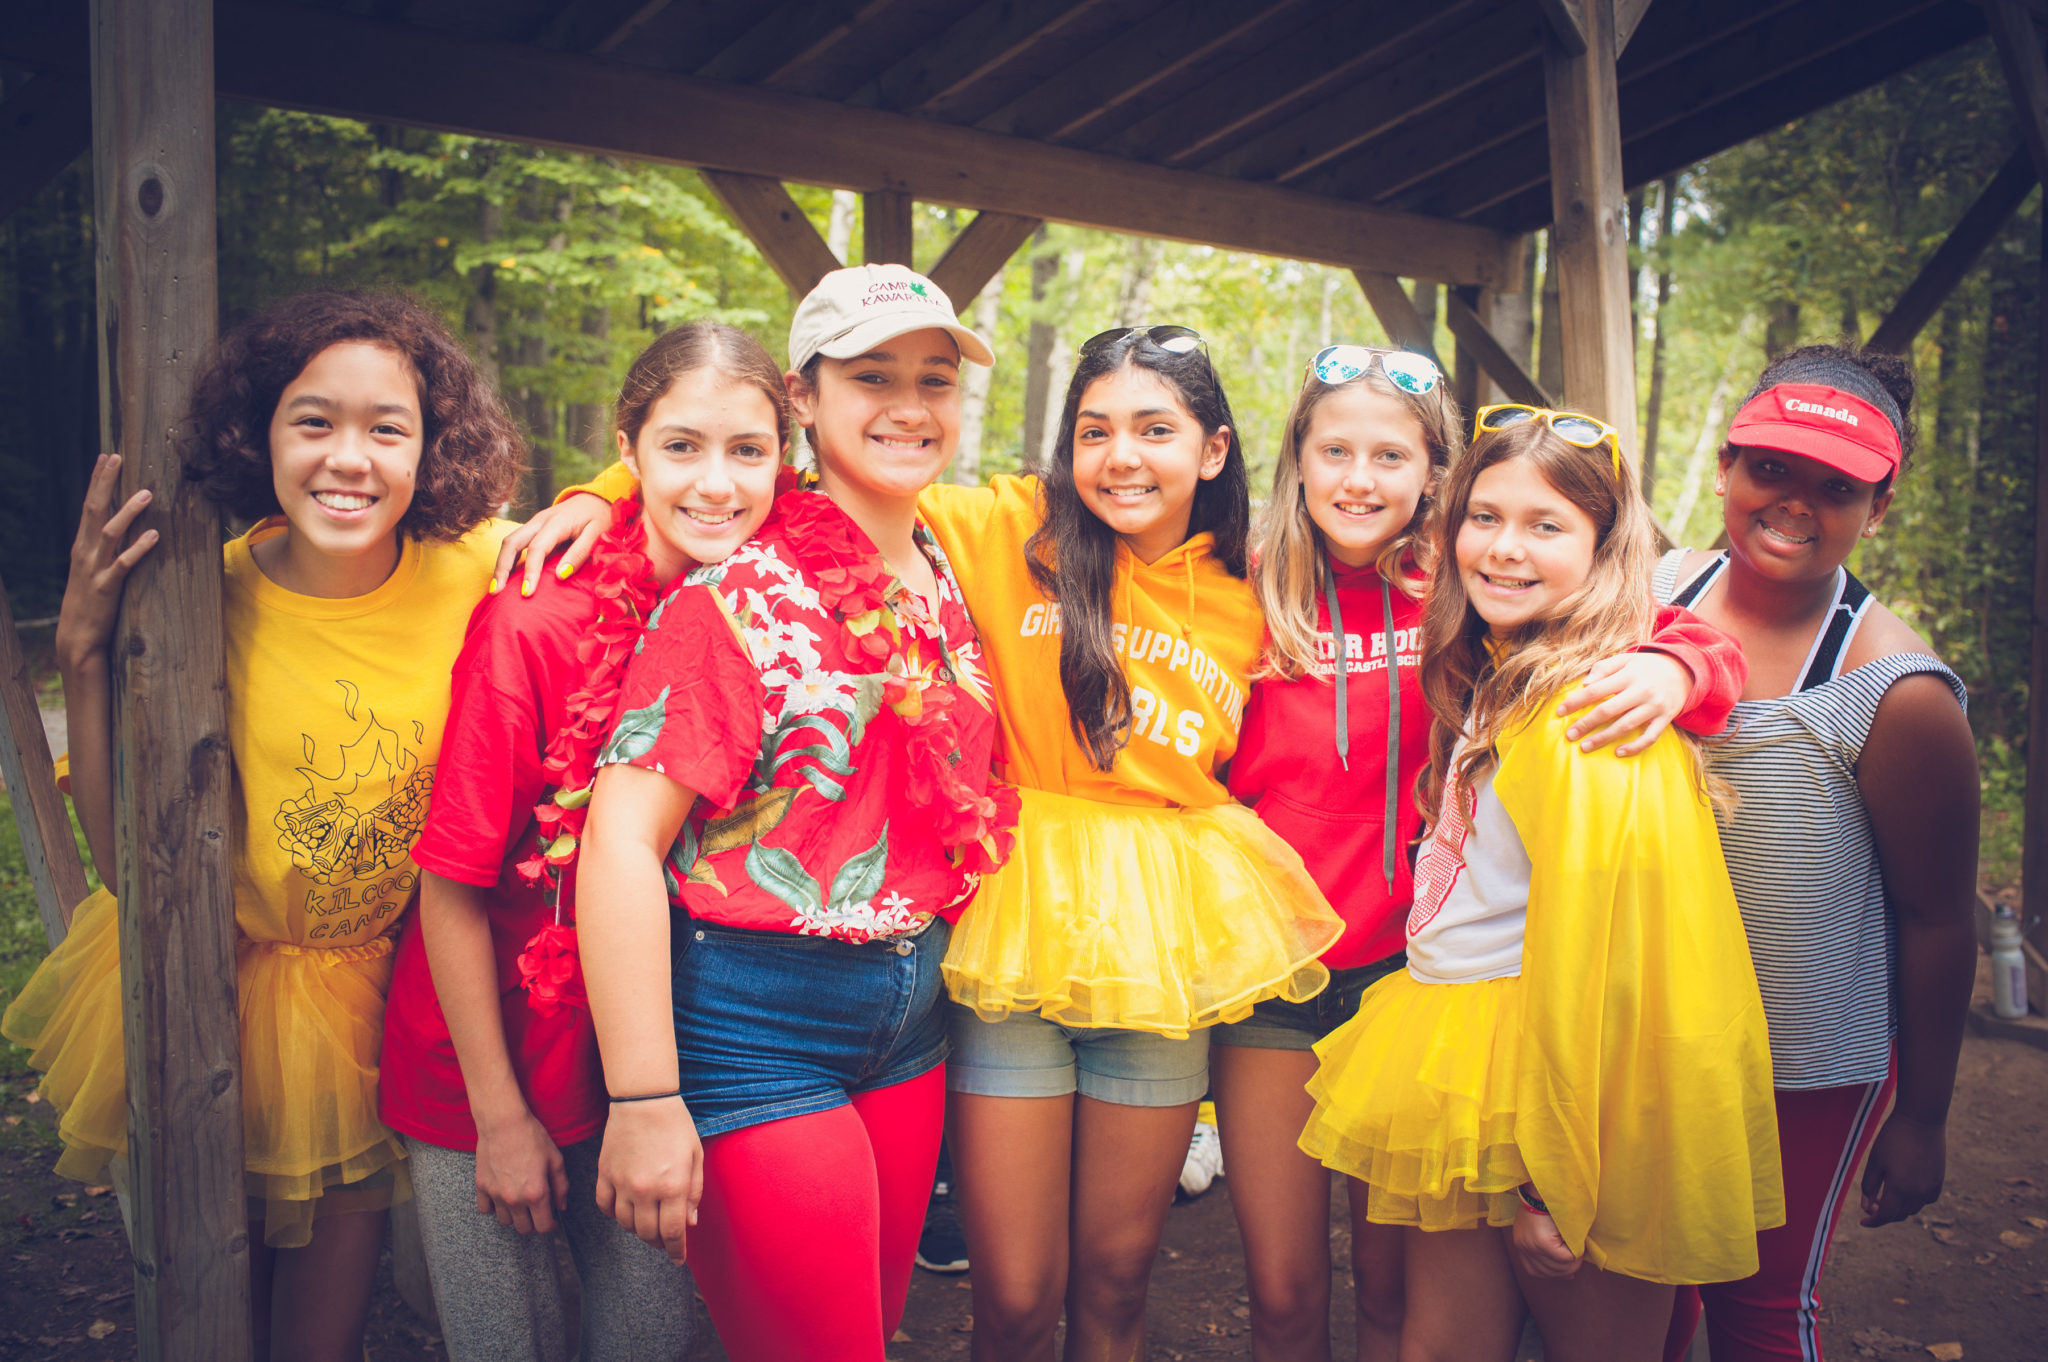 Students show of their school spirit at camp.